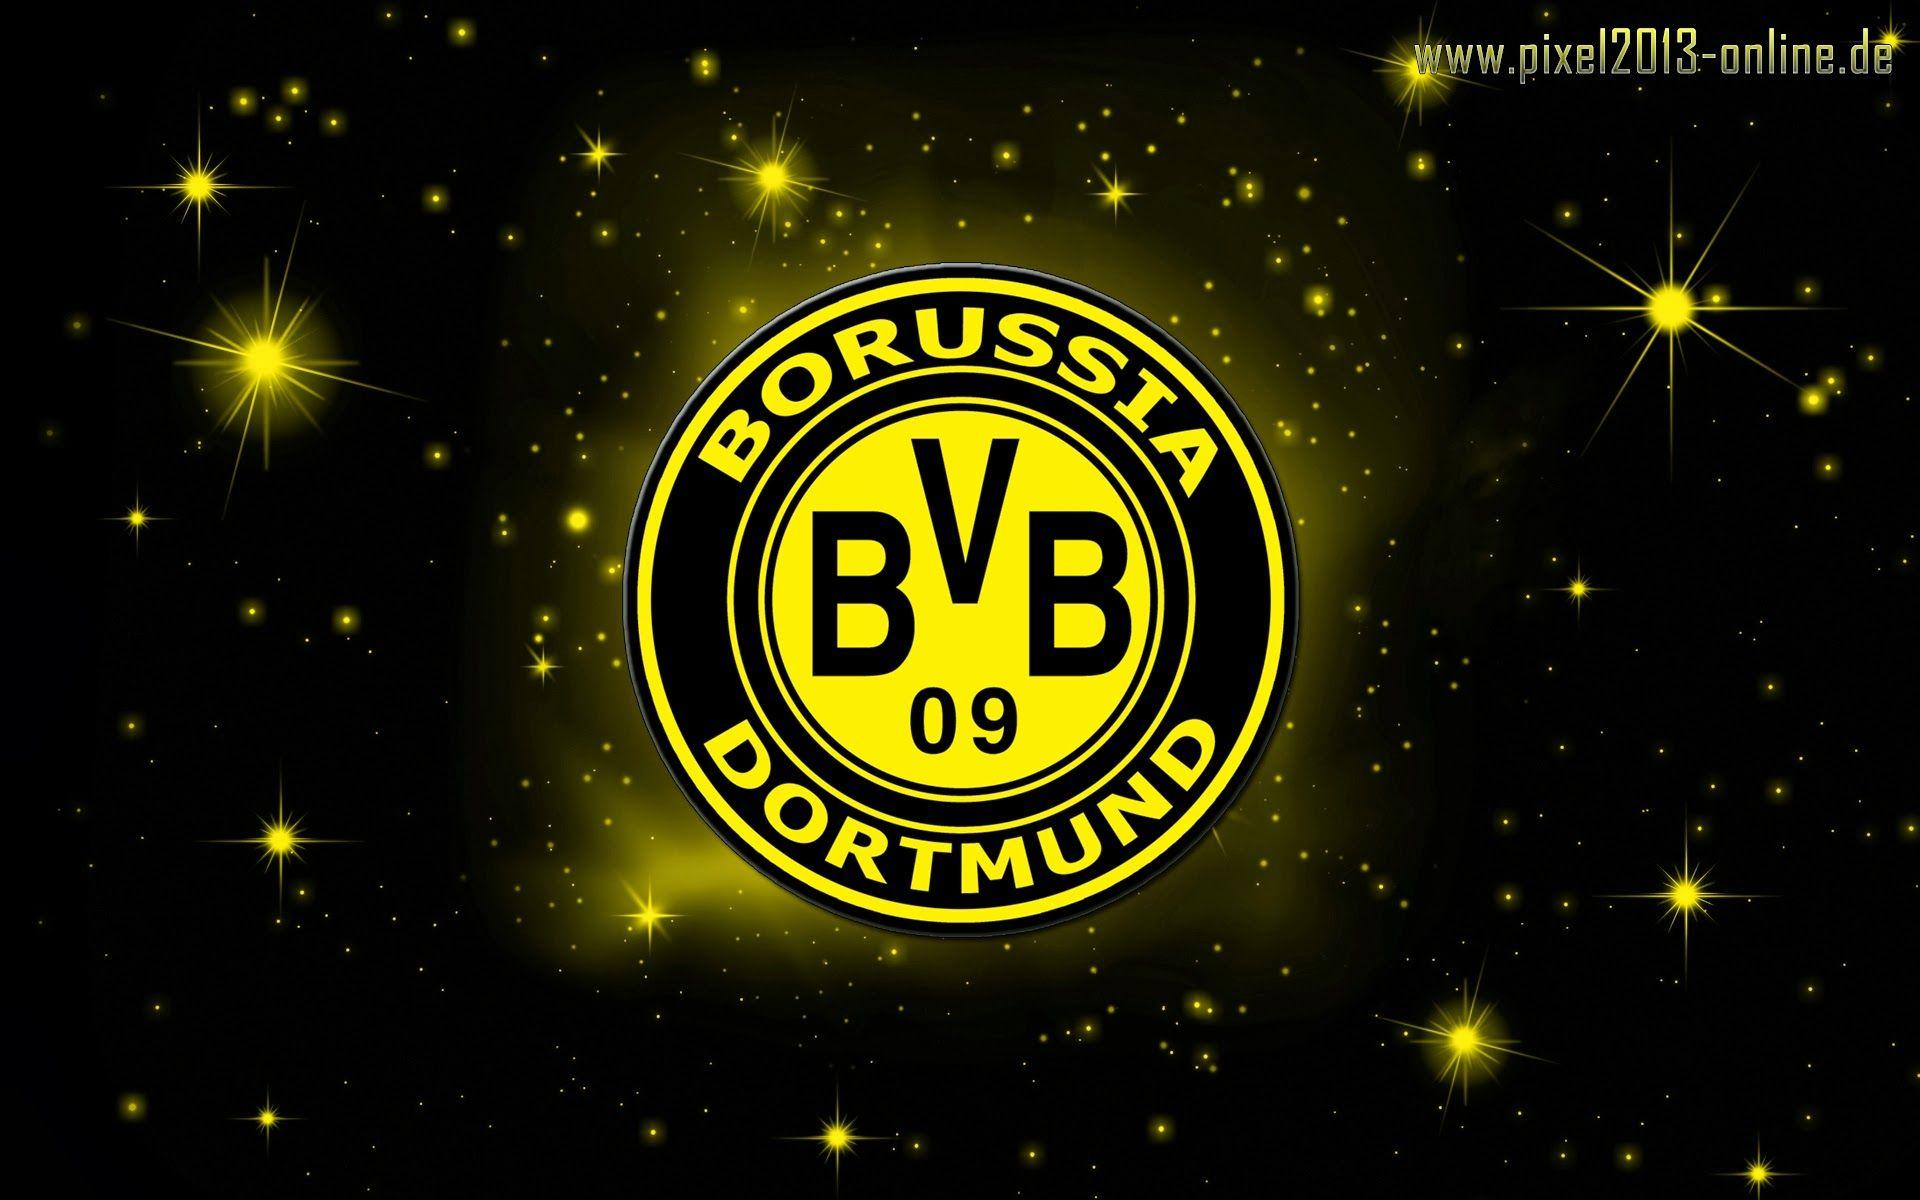 Borussia Dortmund Wallpapers - Wallpaper Cave